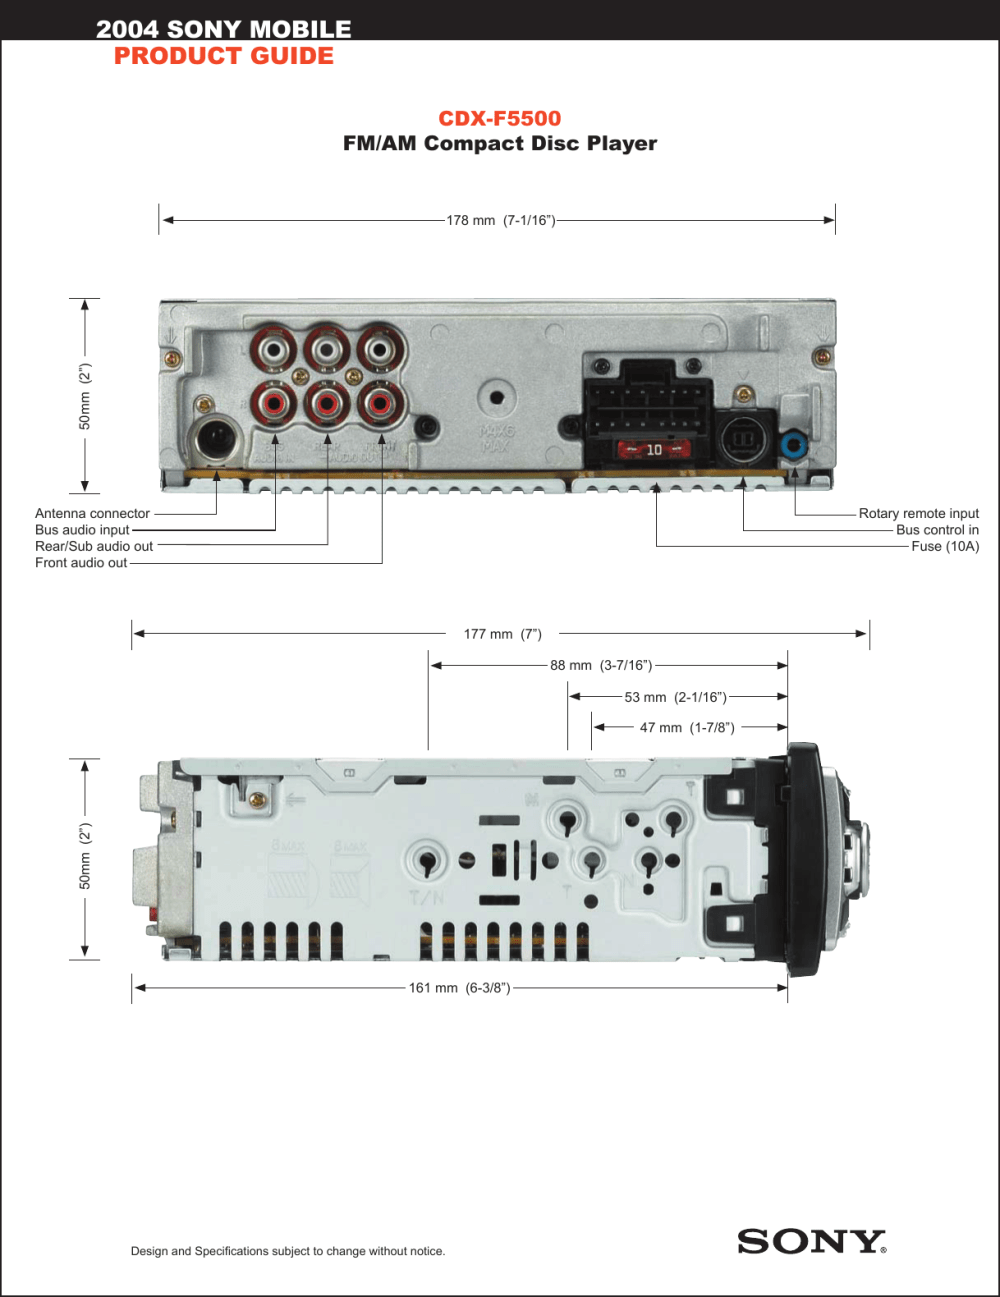 medium resolution of sony cdx f5500 marketing specifications sony m 610 wiring harness diagram page 2 of 2 sony